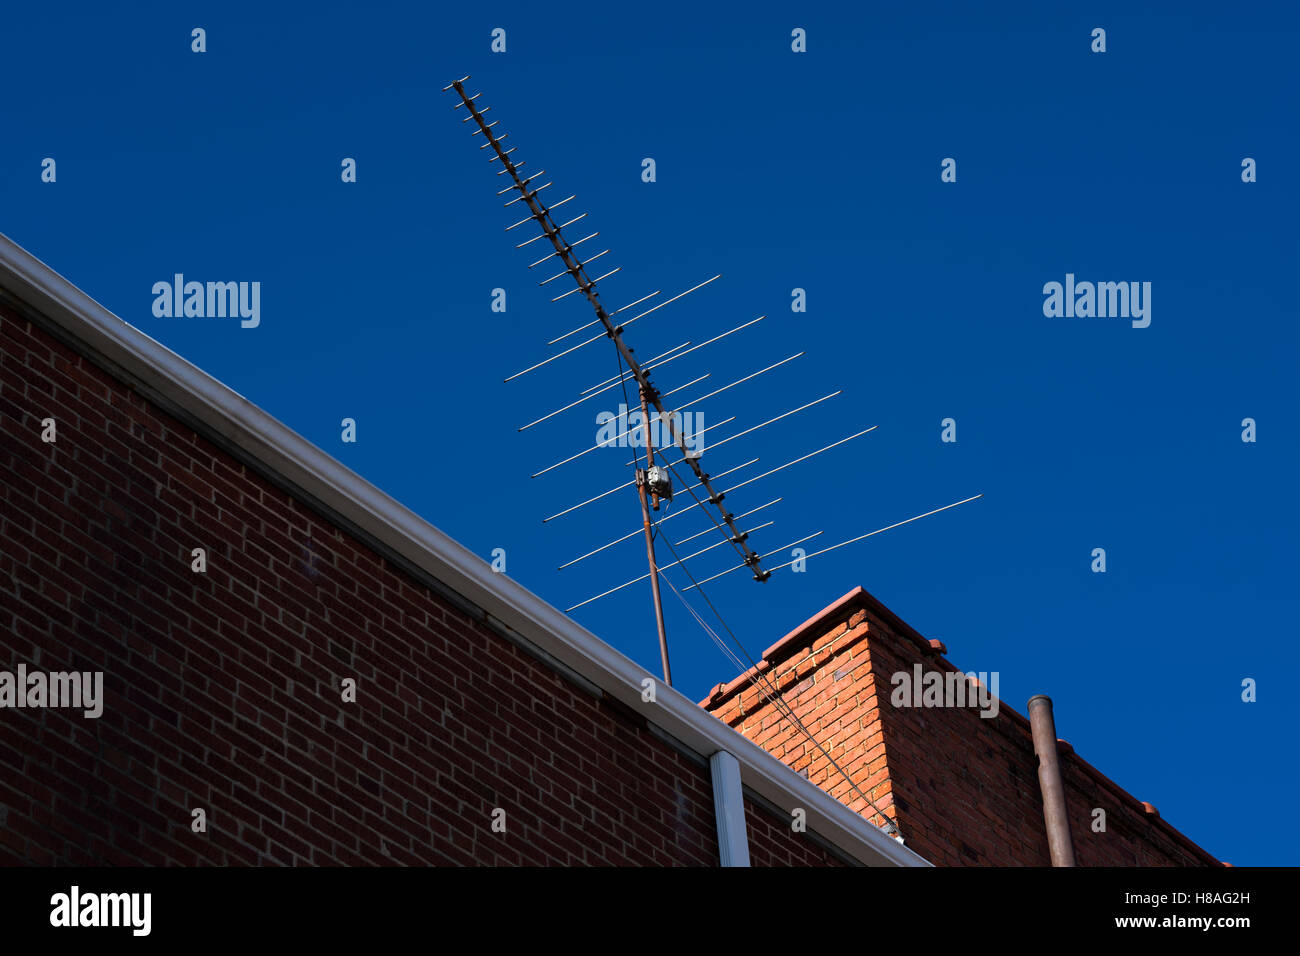 old non HD analog Television antenna on rooftop - Stock Image